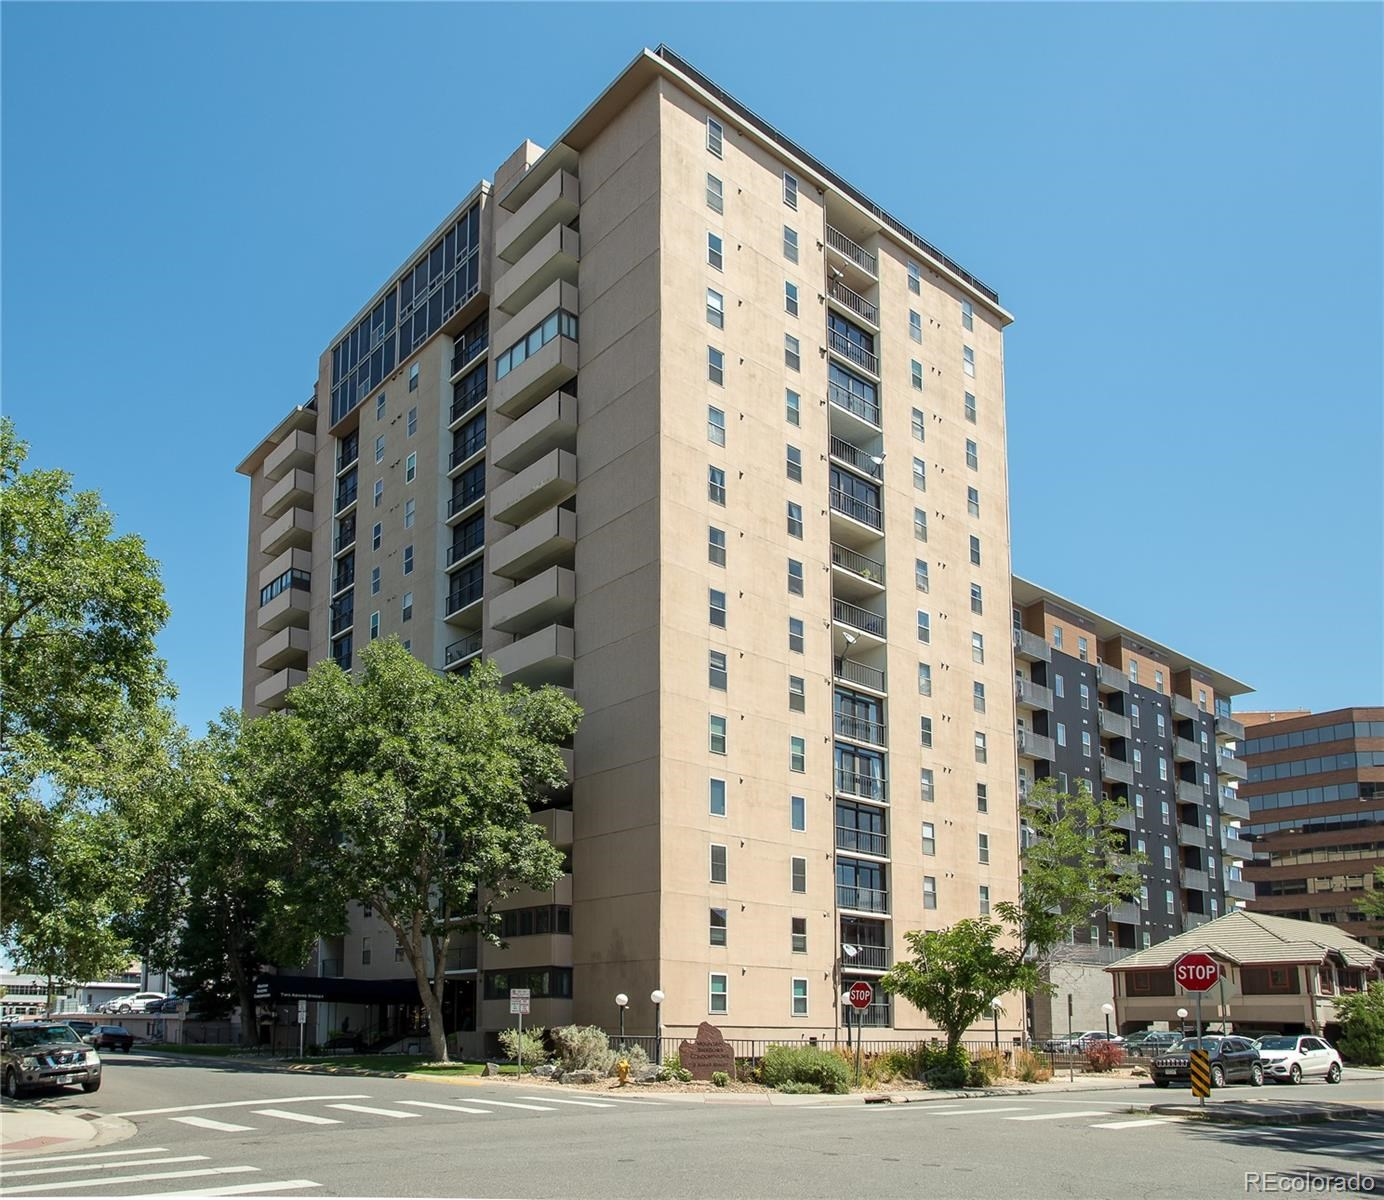 MLS# 6873123 - 38 - 2 Adams Street #1603, Denver, CO 80206